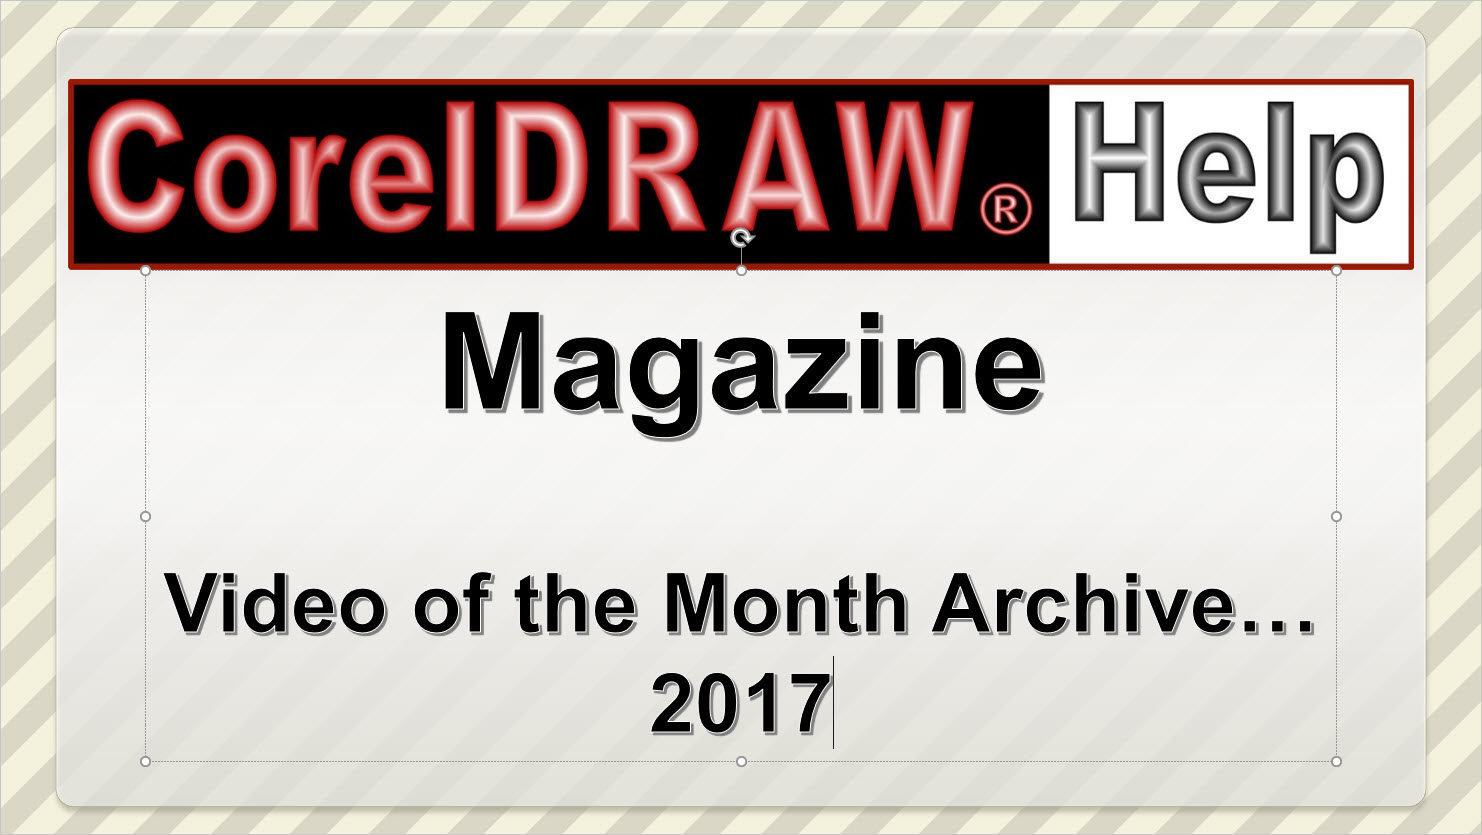 Video of the Month Archive 2017